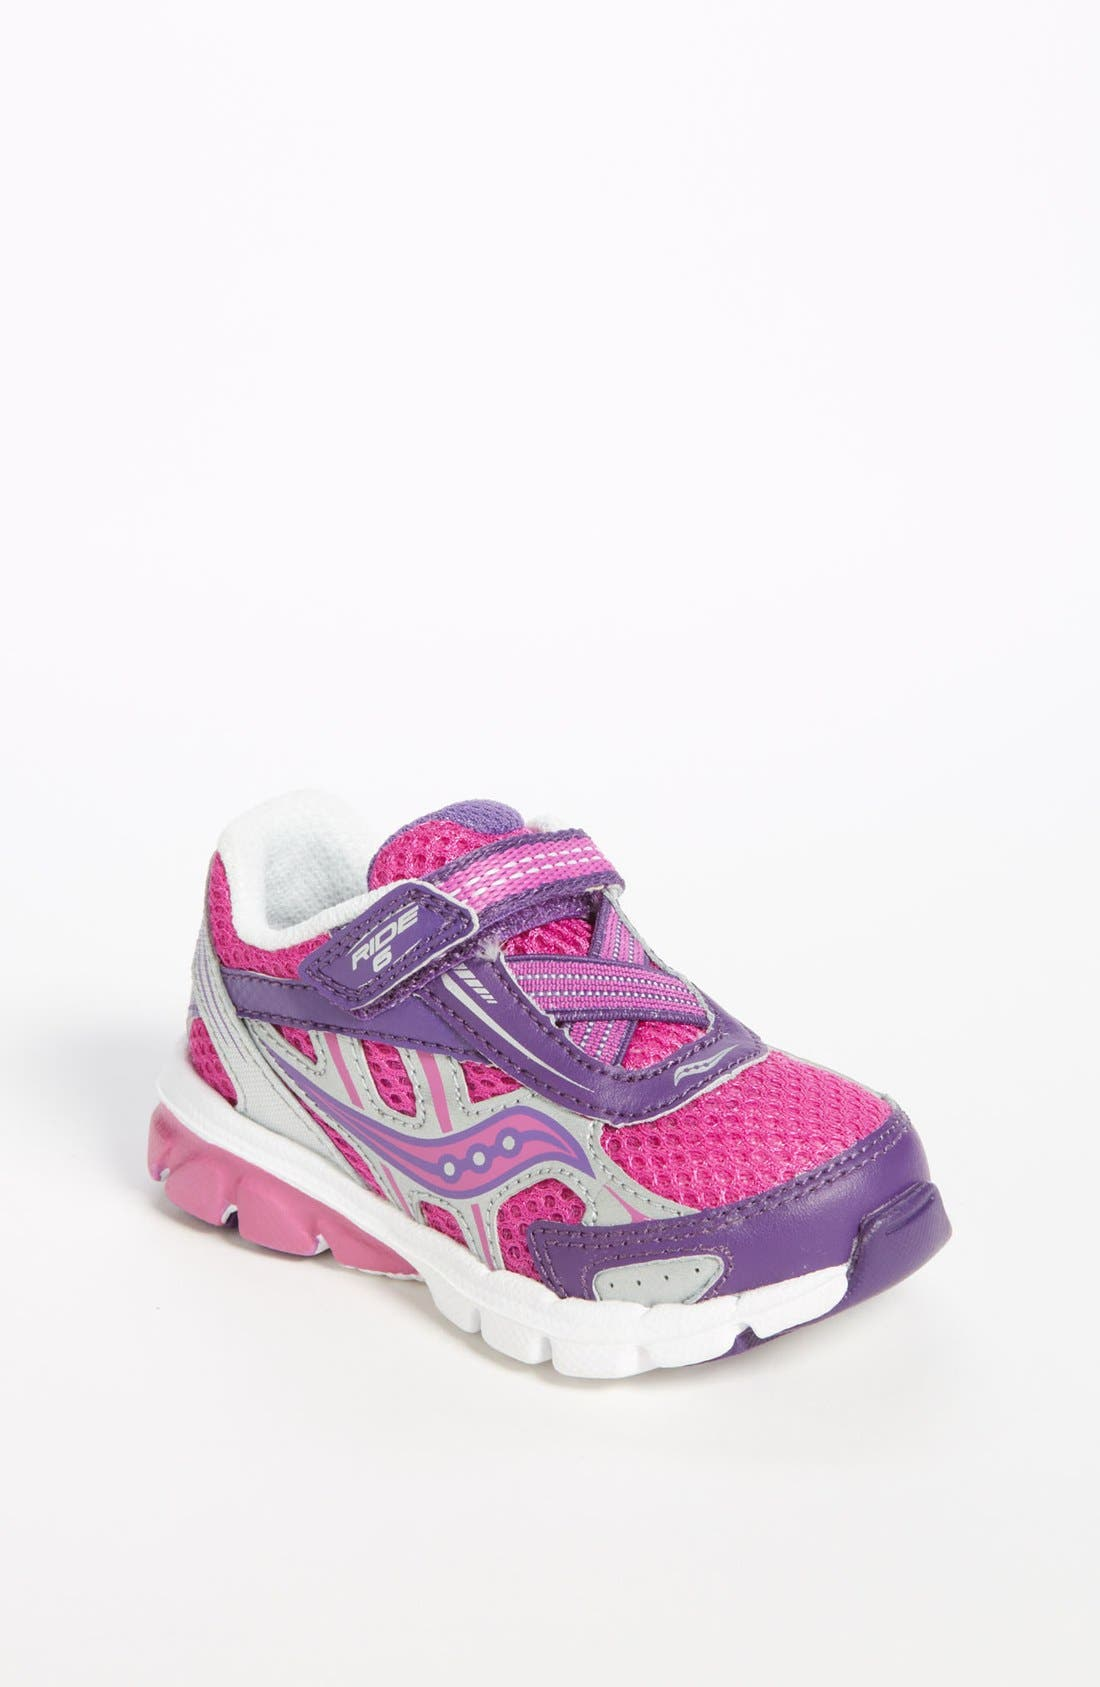 Alternate Image 1 Selected - Saucony 'Baby Ride' Sneaker (Baby, Walker & Toddler)